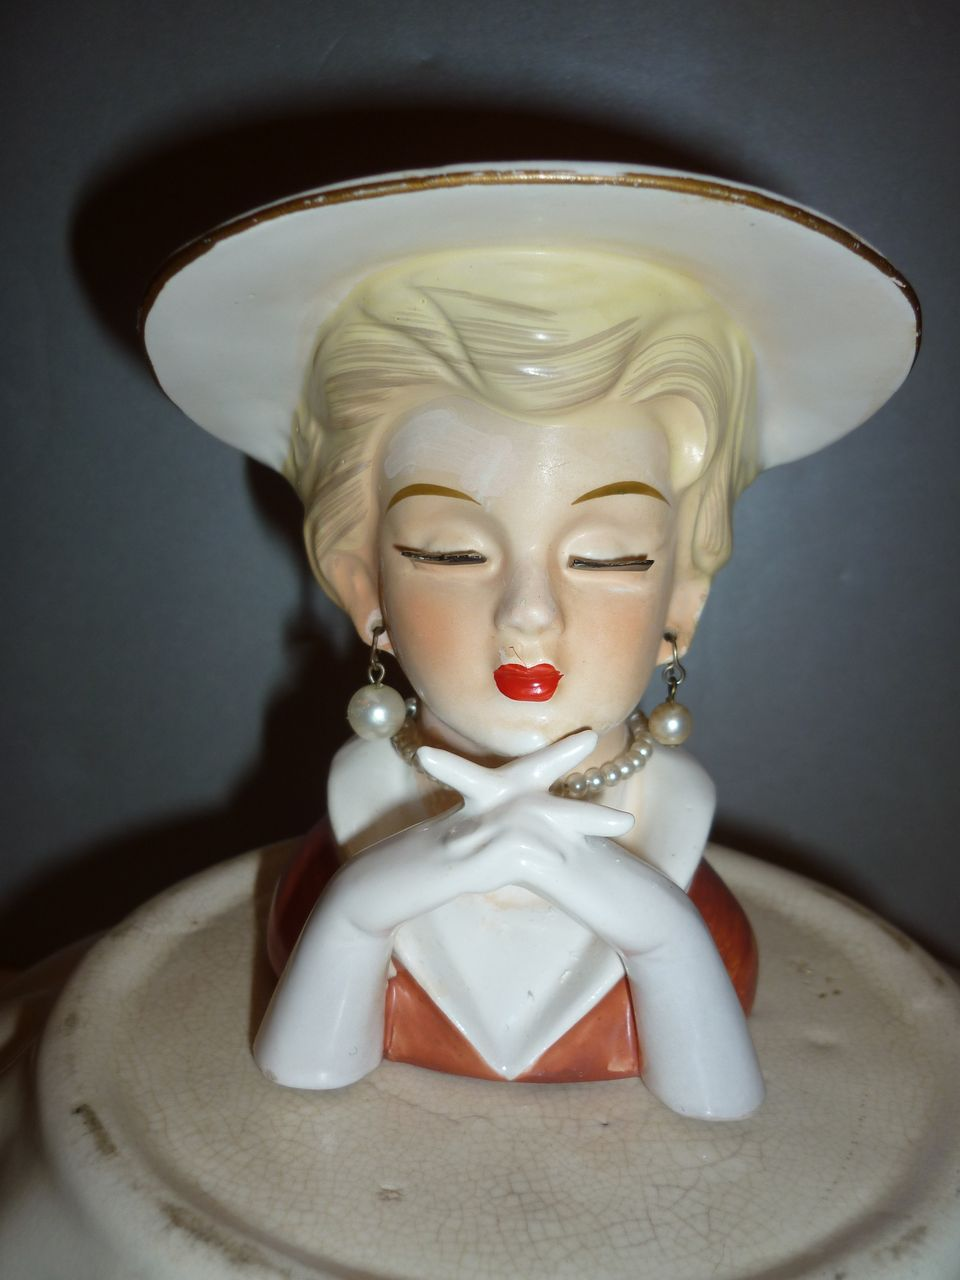 1950's Rubens 494 Head Vase-Pretty girl!